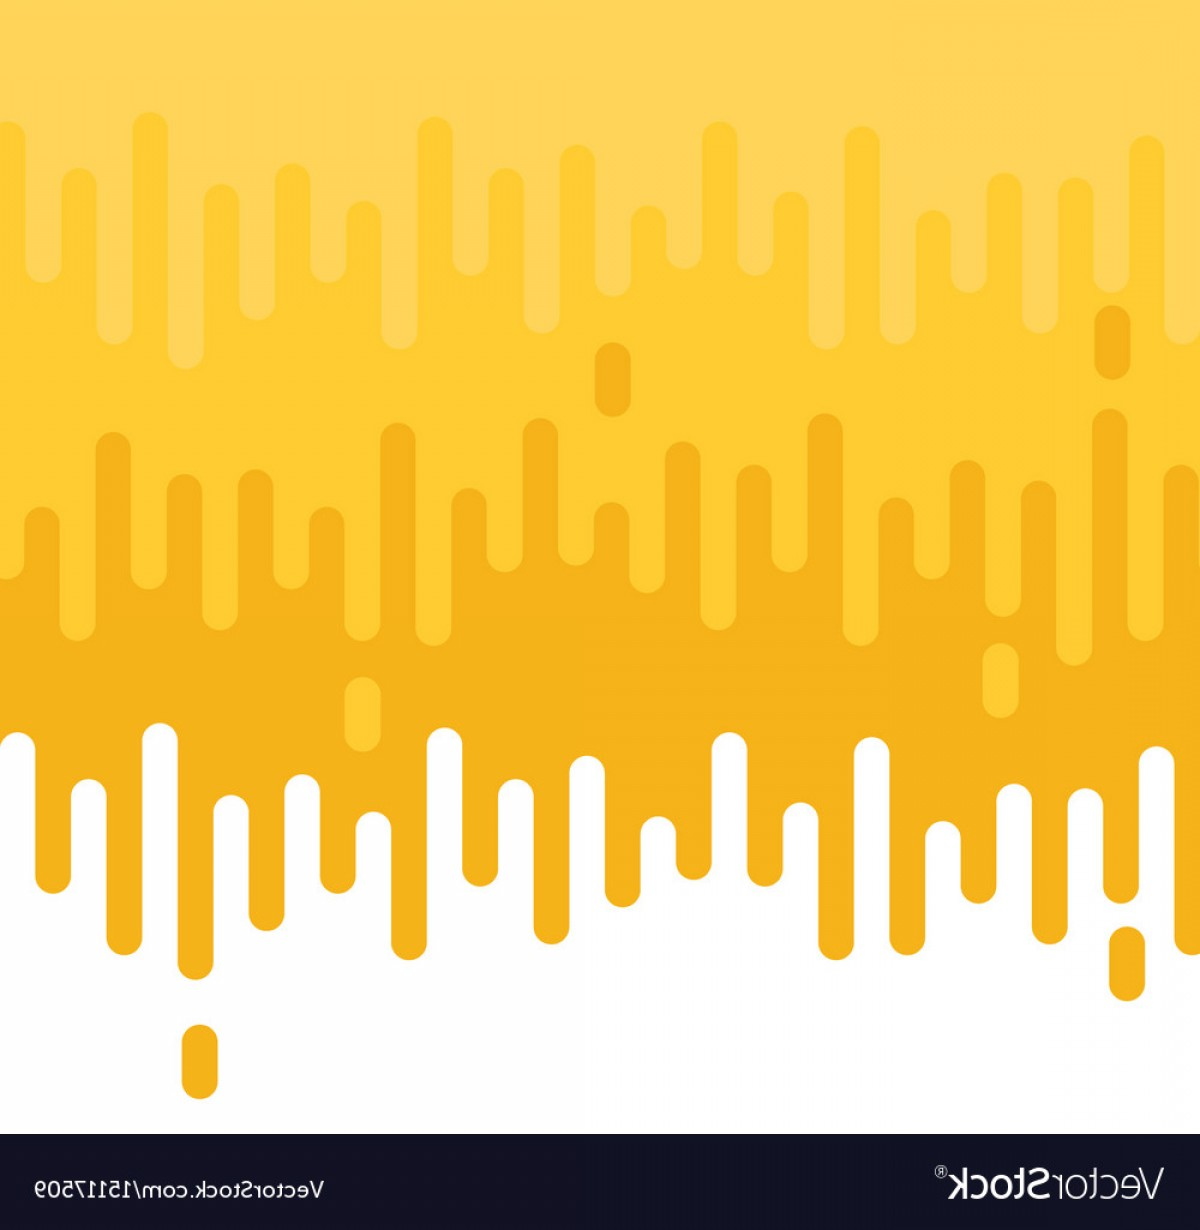 Dripping Paint Vector Illustration: Abstract Background With Dripping Paint Vector